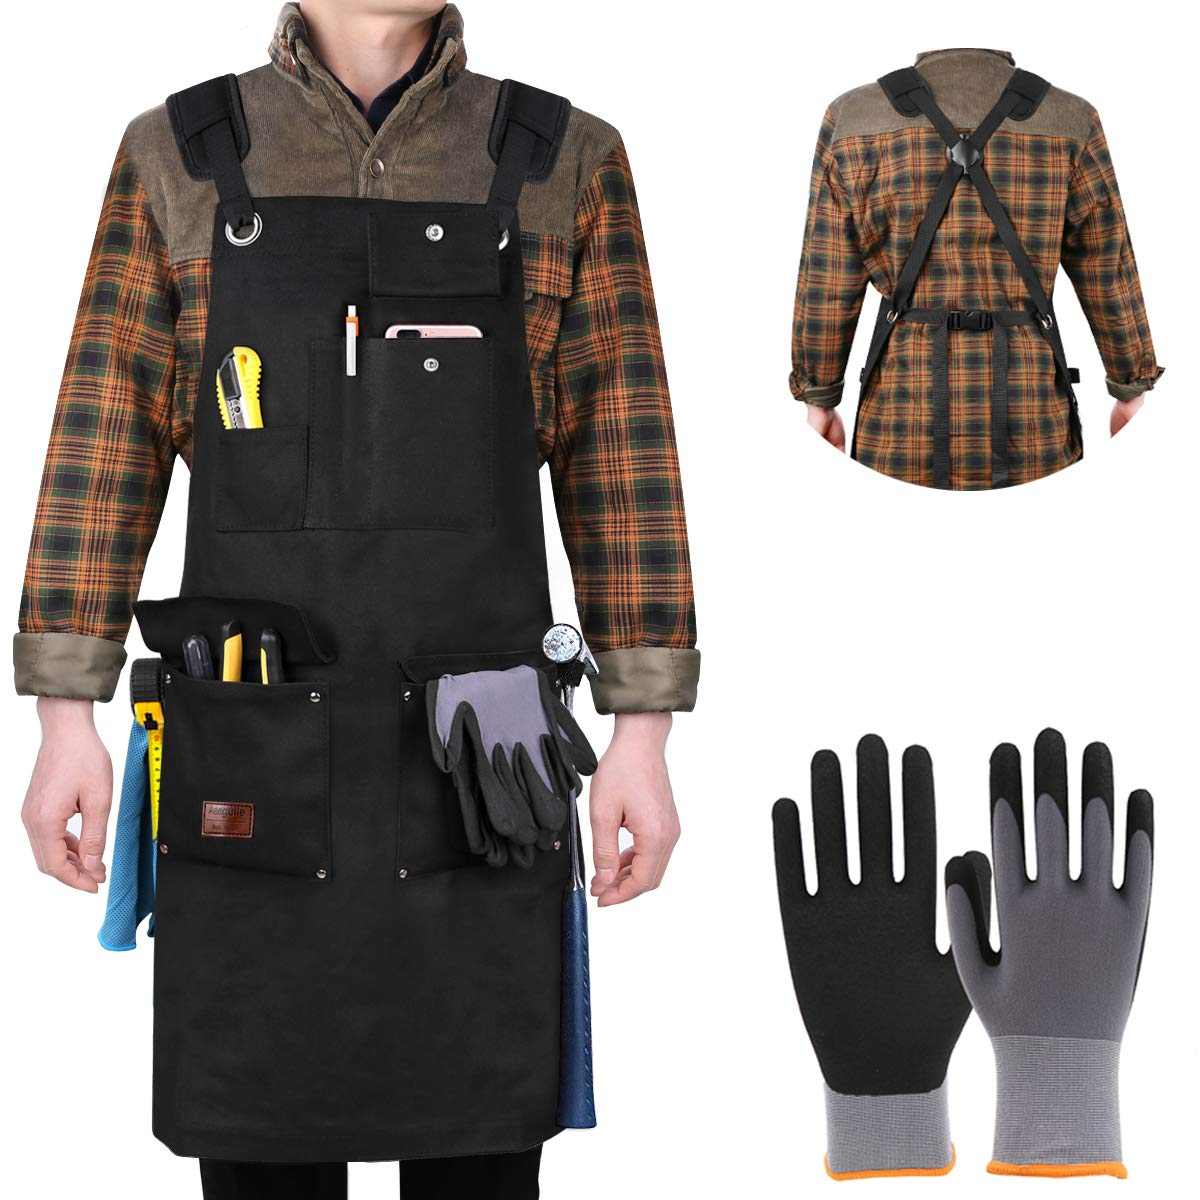 Aeegulle Work Apron, Heavy Duty Waxed Canvas Tool Apron (With work gloves), 6 Pockets, Thick shoulder pad, Quick Release Buckle, Cross-Back Straps Adjustable M to XXL, Apron for Men & Women(black) by Aeegulle